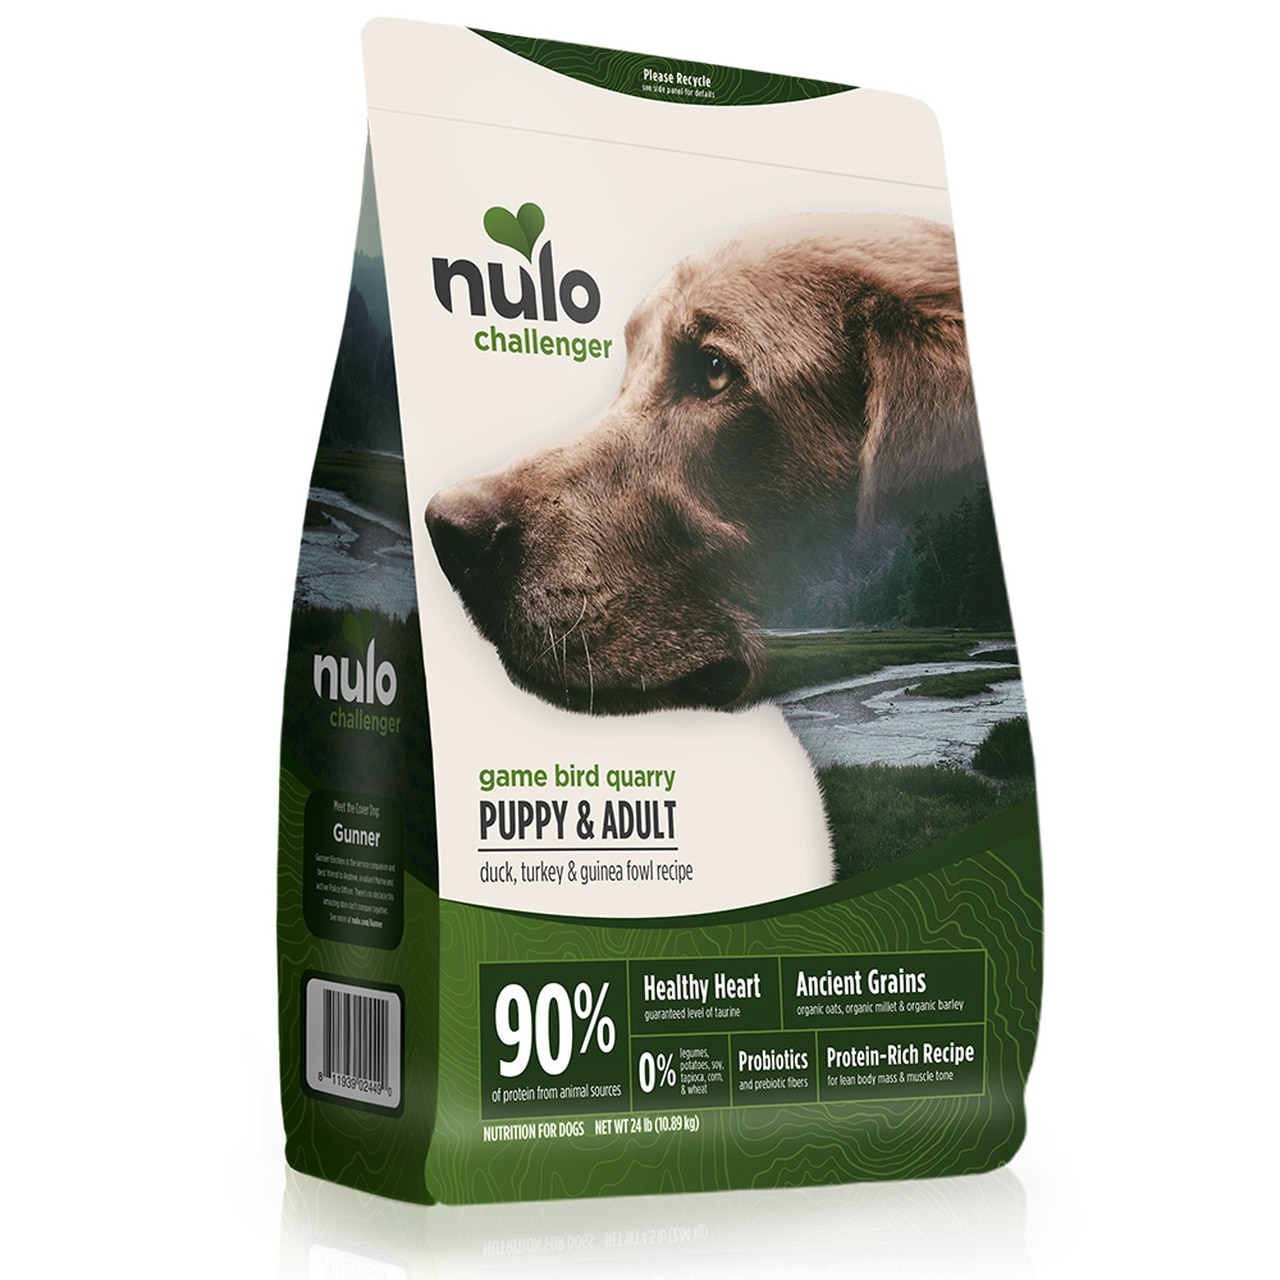 Nulo Challenger Game Bird Quarry Duck, Turkey & Guinea Fowl Puppy & Adult Dry Dog Food, 4.5-lb